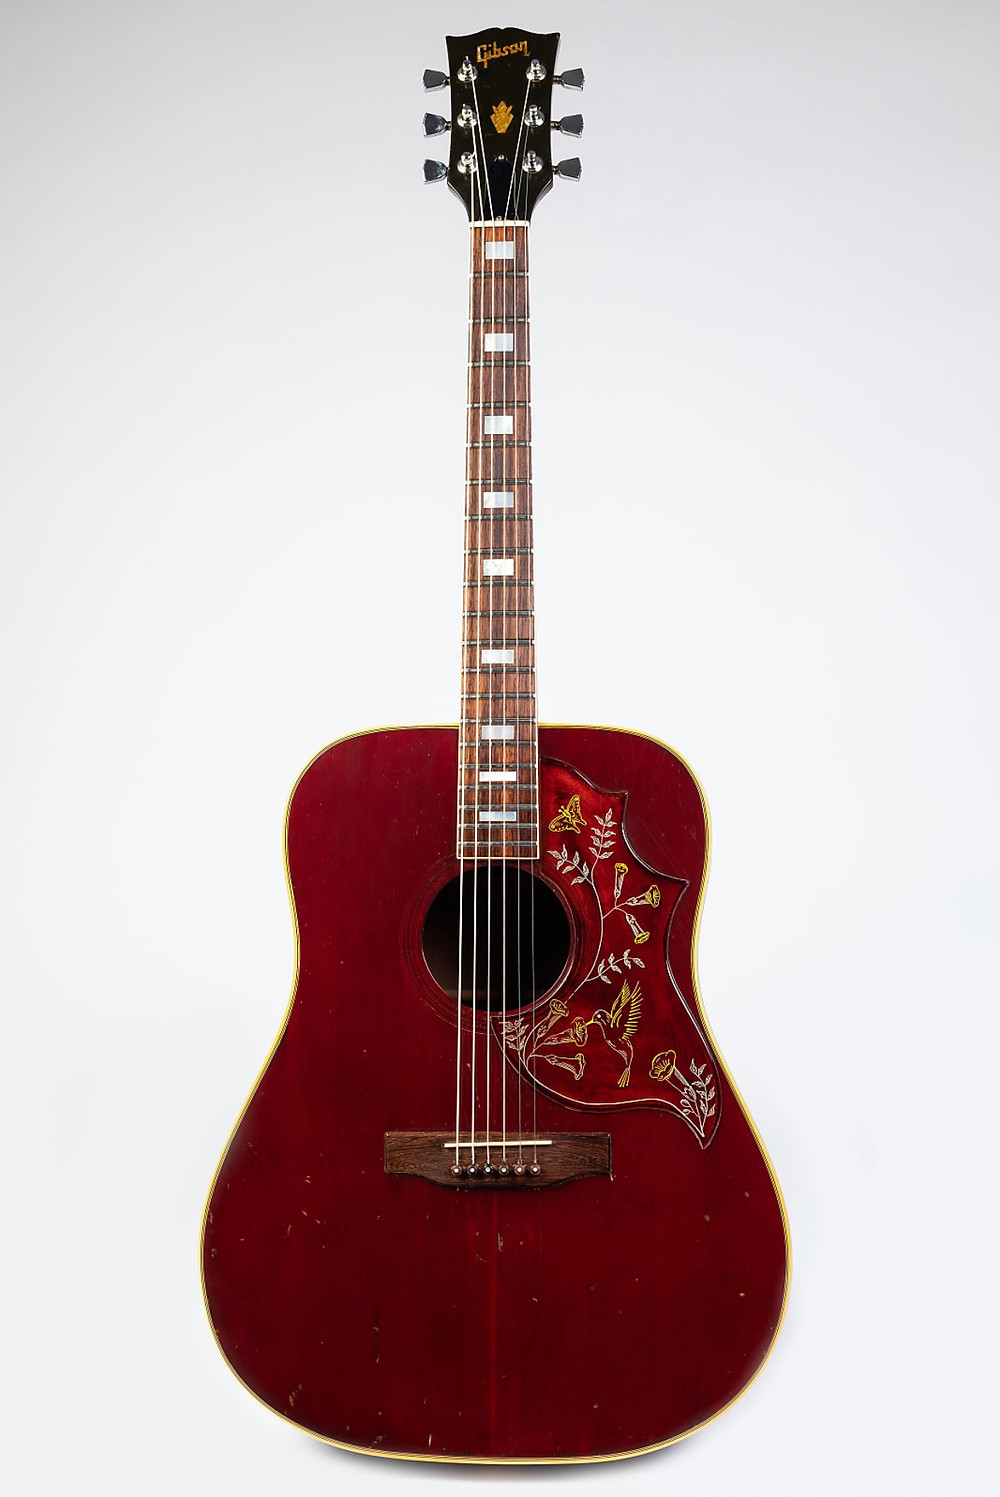 My fabulous 1976 Cherry Red Gibson Hummingbird Acoustic Guitar